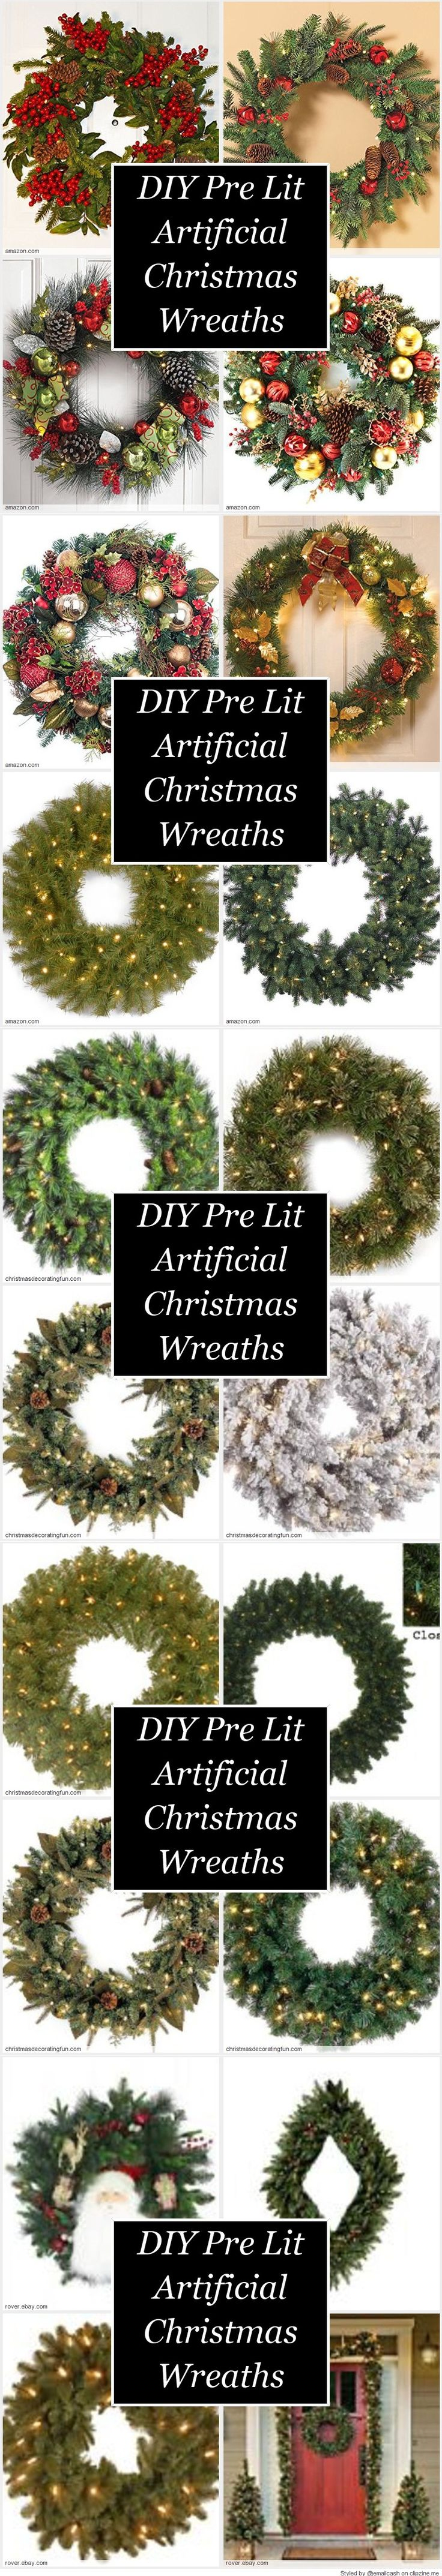 DIY Pre Lit Artificial Christmas Wreaths Ideas - Looking for DIY Pre Lit Artificial Christmas Wreaths Ideas? It's usually not that hard but it usually helps if you buy an undecorated Christmas wreath and start from there. Look at some of the wreaths and ideas that we found.